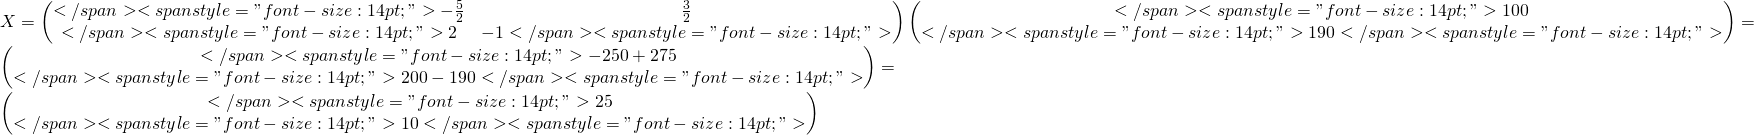 "X=\begin{pmatrix}</span> <span style=""font-size: 14pt;"">-\frac{5}{2} &\frac{3}{2} \\</span> <span style=""font-size: 14pt;"">2 &-1</span> <span style=""font-size: 14pt;"">\end{pmatrix}\begin{pmatrix}</span> <span style=""font-size: 14pt;"">100\\</span> <span style=""font-size: 14pt;"">190</span> <span style=""font-size: 14pt;"">\end{pmatrix}=\begin{pmatrix}</span> <span style=""font-size: 14pt;"">-250+275\\</span> <span style=""font-size: 14pt;"">200-190</span> <span style=""font-size: 14pt;"">\end{pmatrix}=\begin{pmatrix}</span> <span style=""font-size: 14pt;"">25\\</span> <span style=""font-size: 14pt;"">10</span> <span style=""font-size: 14pt;"">\end{pmatrix}"